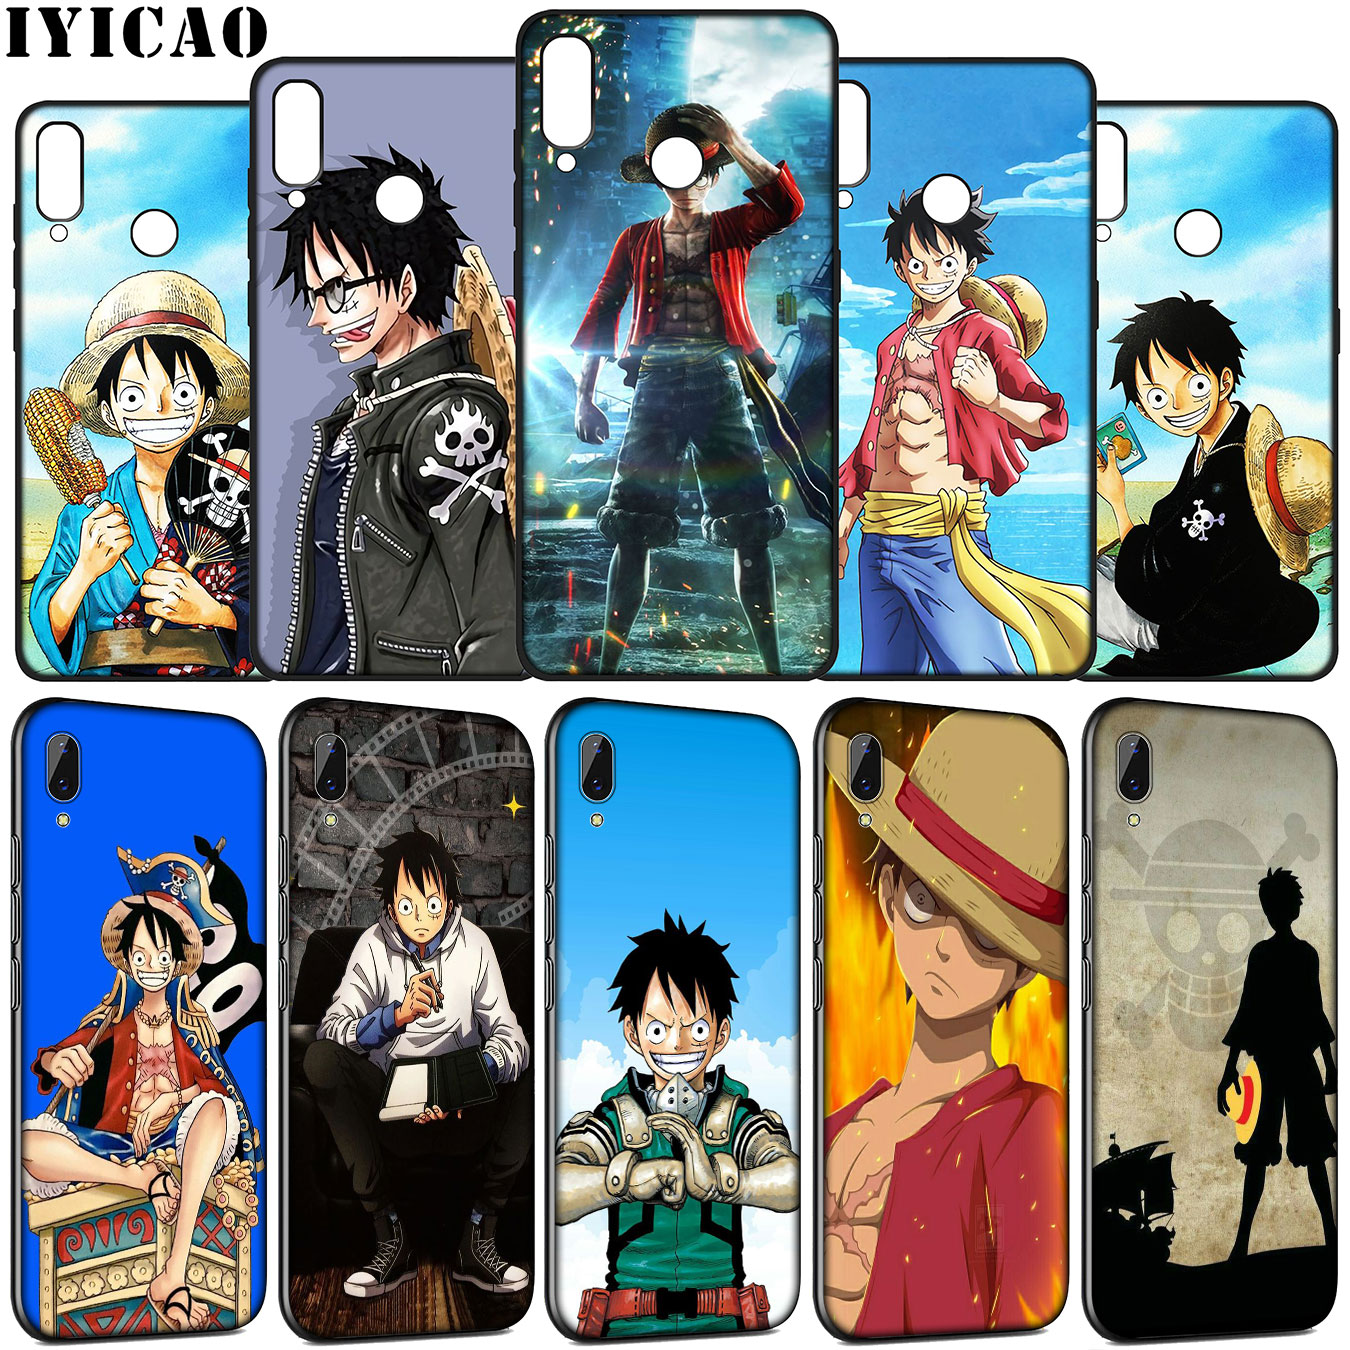 IYICAO Luffy <font><b>one</b></font> <font><b>piece</b></font> Soft Silicone Case for Huawei Y9 Y7 Y6 Prime <font><b>2019</b></font> <font><b>Honor</b></font> <font><b>view</b></font> 20 8C 8X 8 9 9X <font><b>10</b></font> <font><b>Lite</b></font> 7C 7X 7A Pro <font><b>Cover</b></font> image